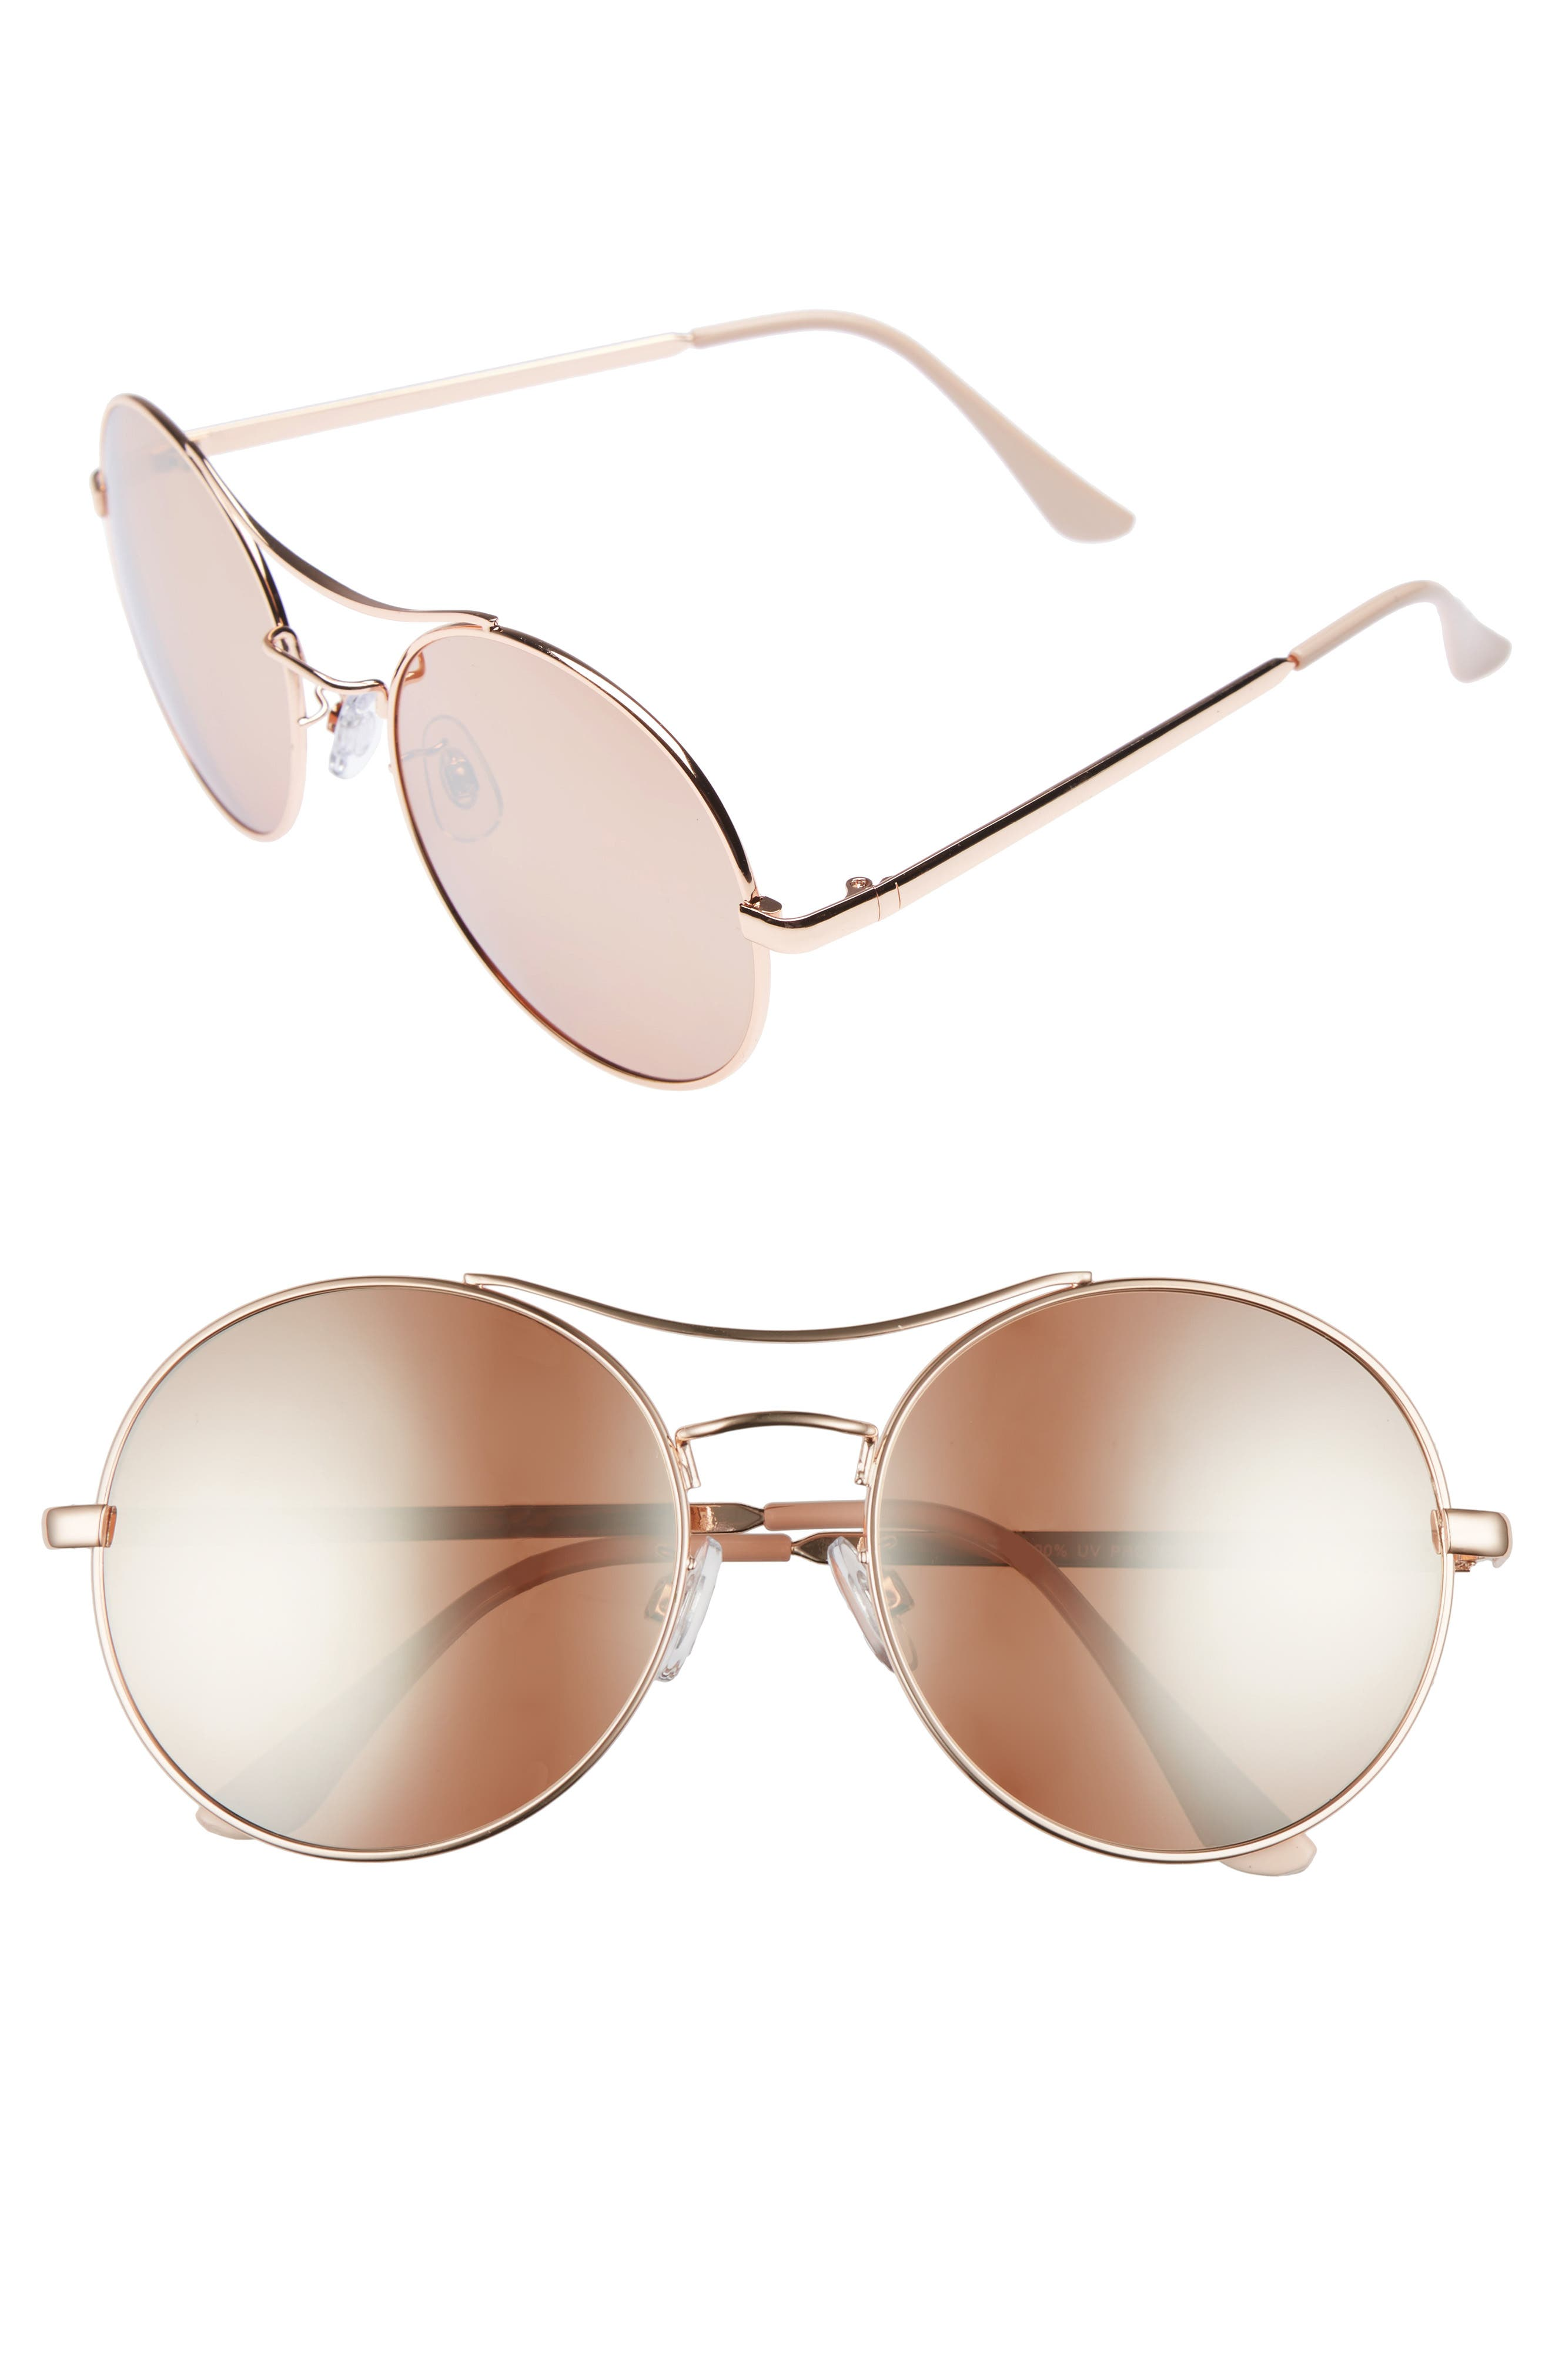 Main Image - BP. 58mm Oversize Round Sunglasses